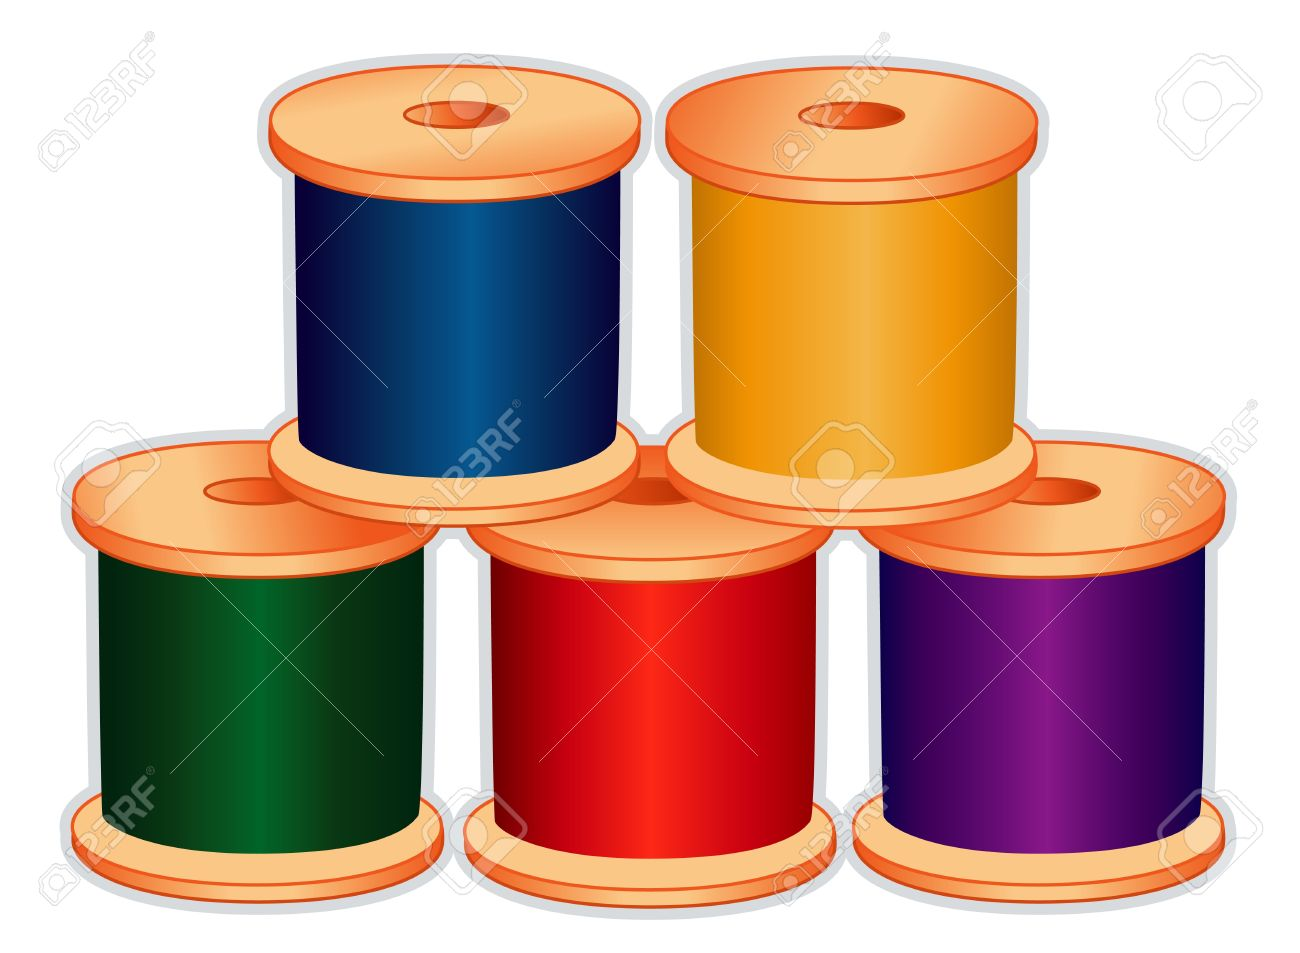 Spools of thread in jewel colors for sewing tailoring quilting spools of thread in jewel colors for sewing tailoring quilting crafts needlework solutioingenieria Gallery